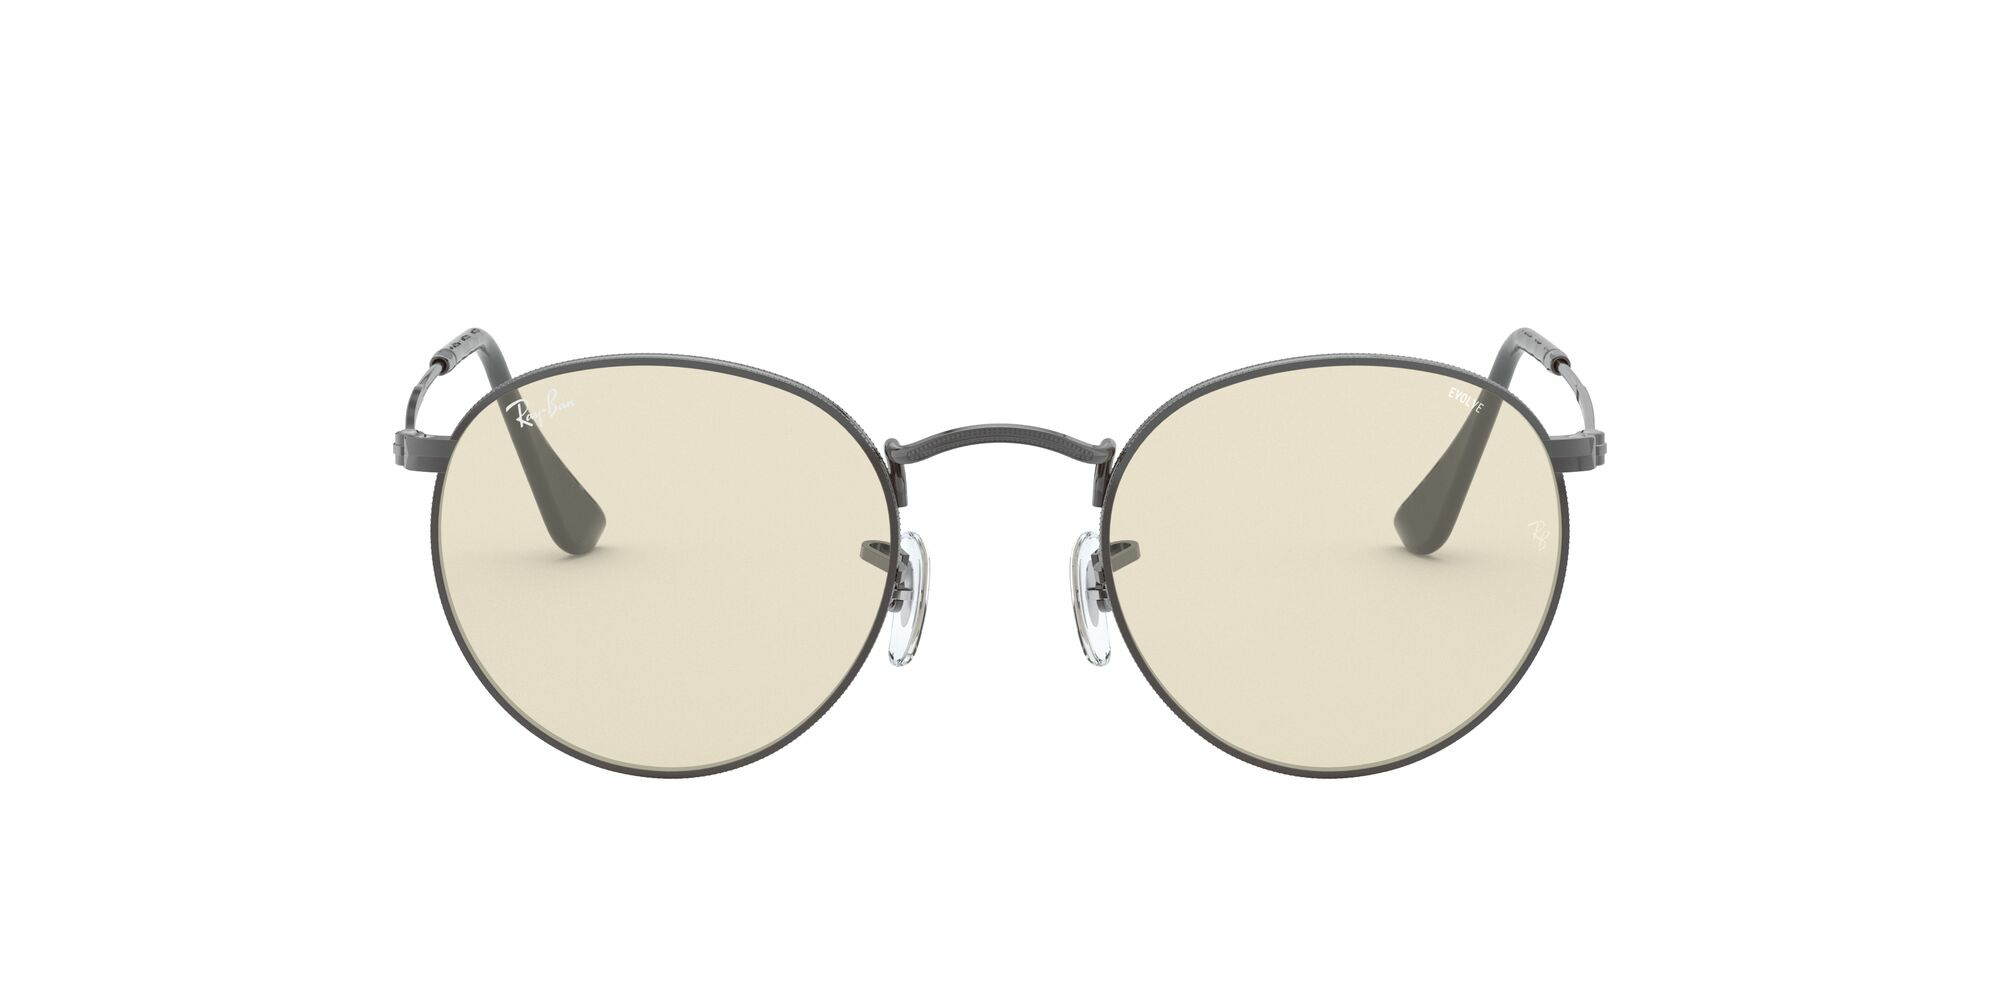 Front Ray-Ban Ray-Ban 0RB3447 004/T2 53/21 Grijs/Geel